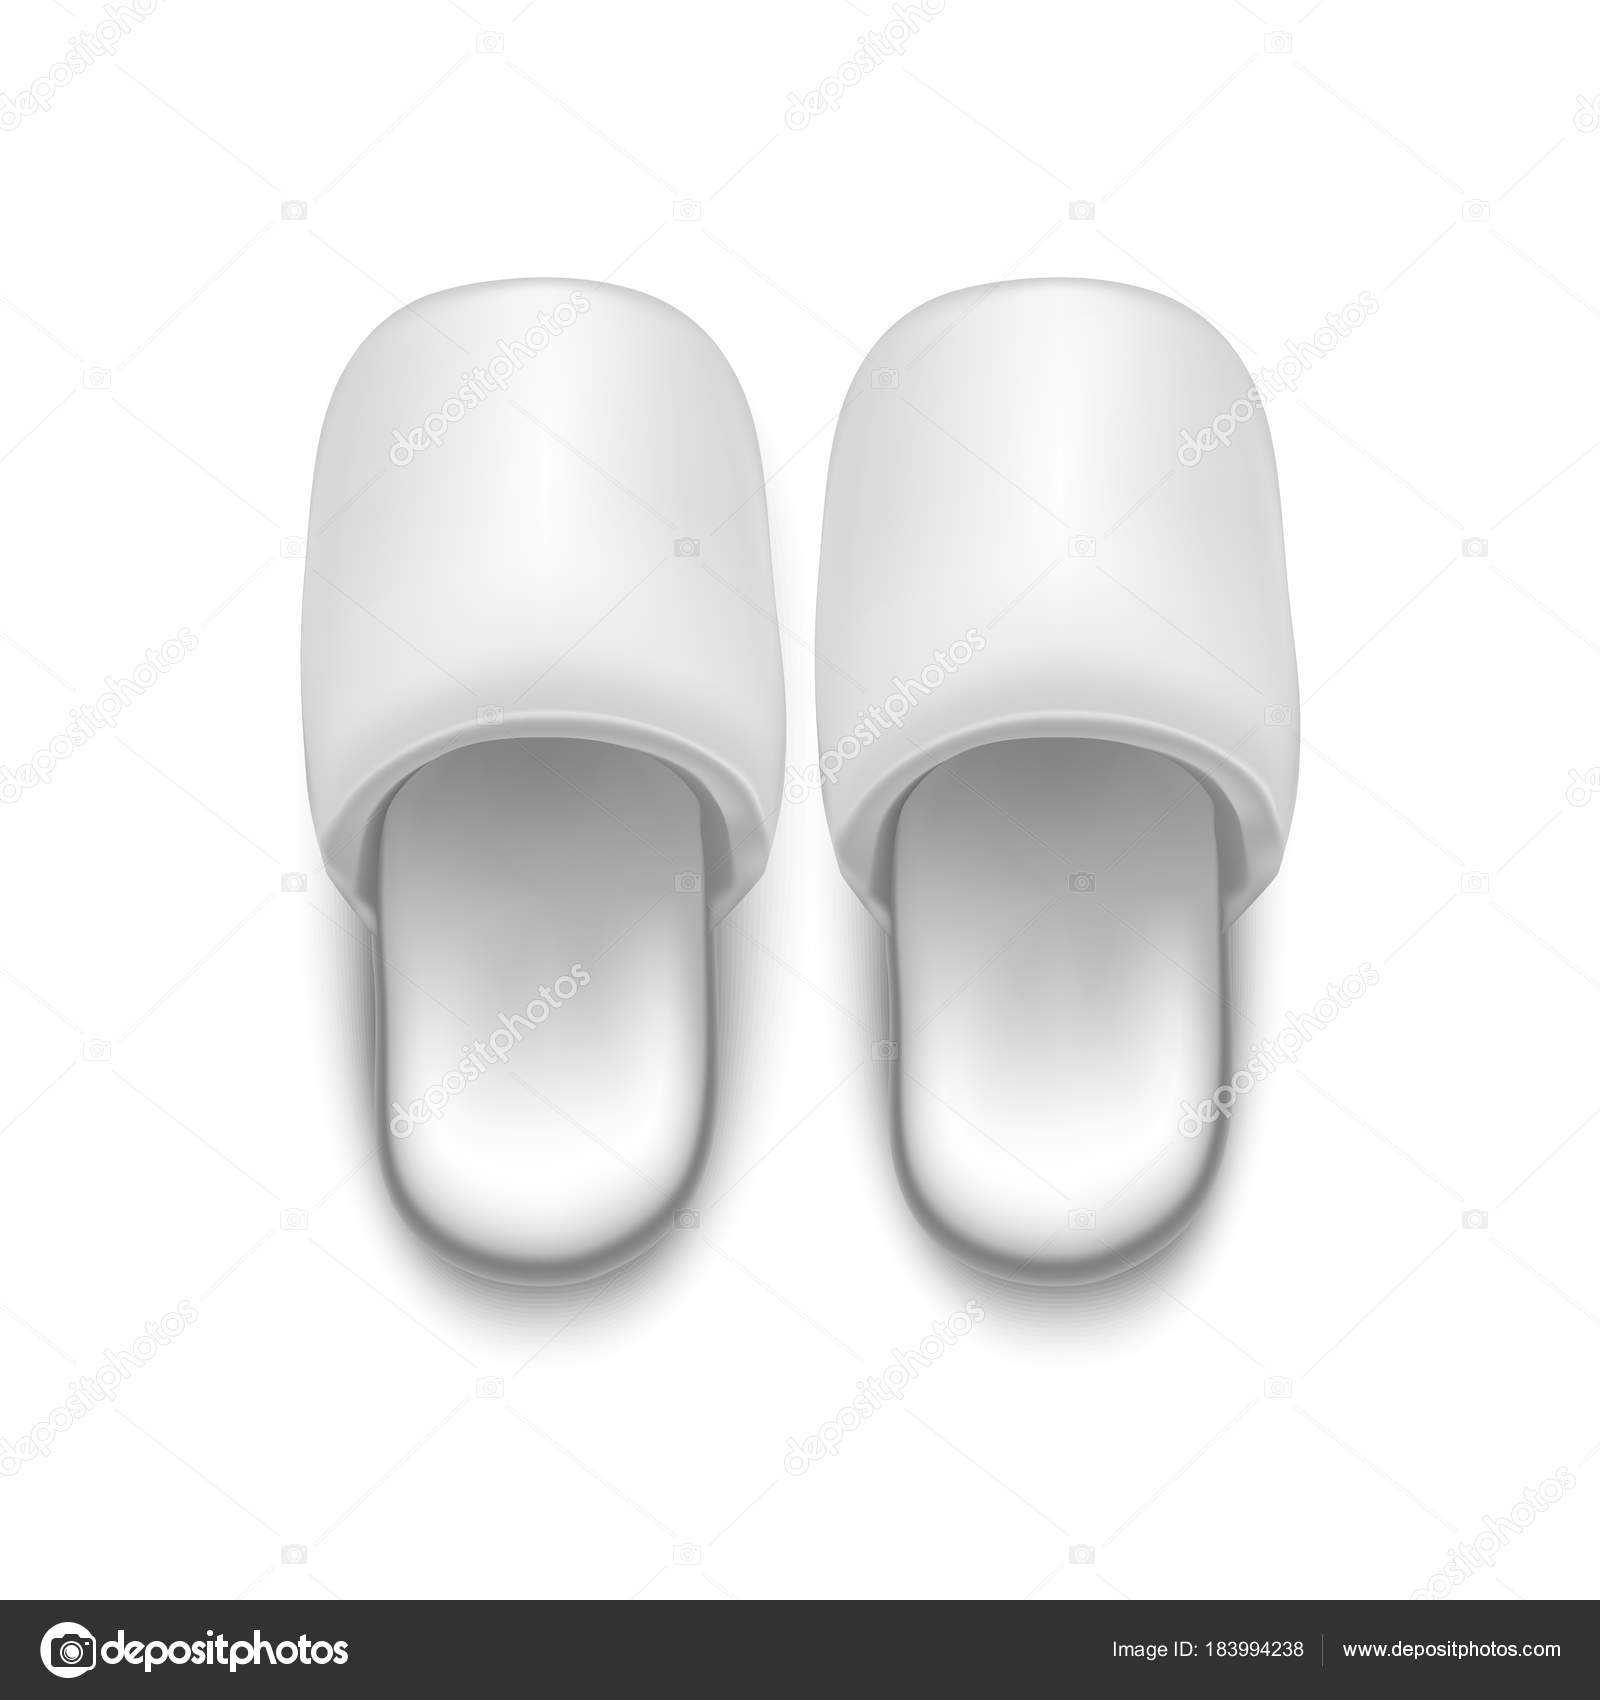 bb6e6319bf4b8 Realistic Detailed 3d Template Blank White Home Slippers Mock Up ...